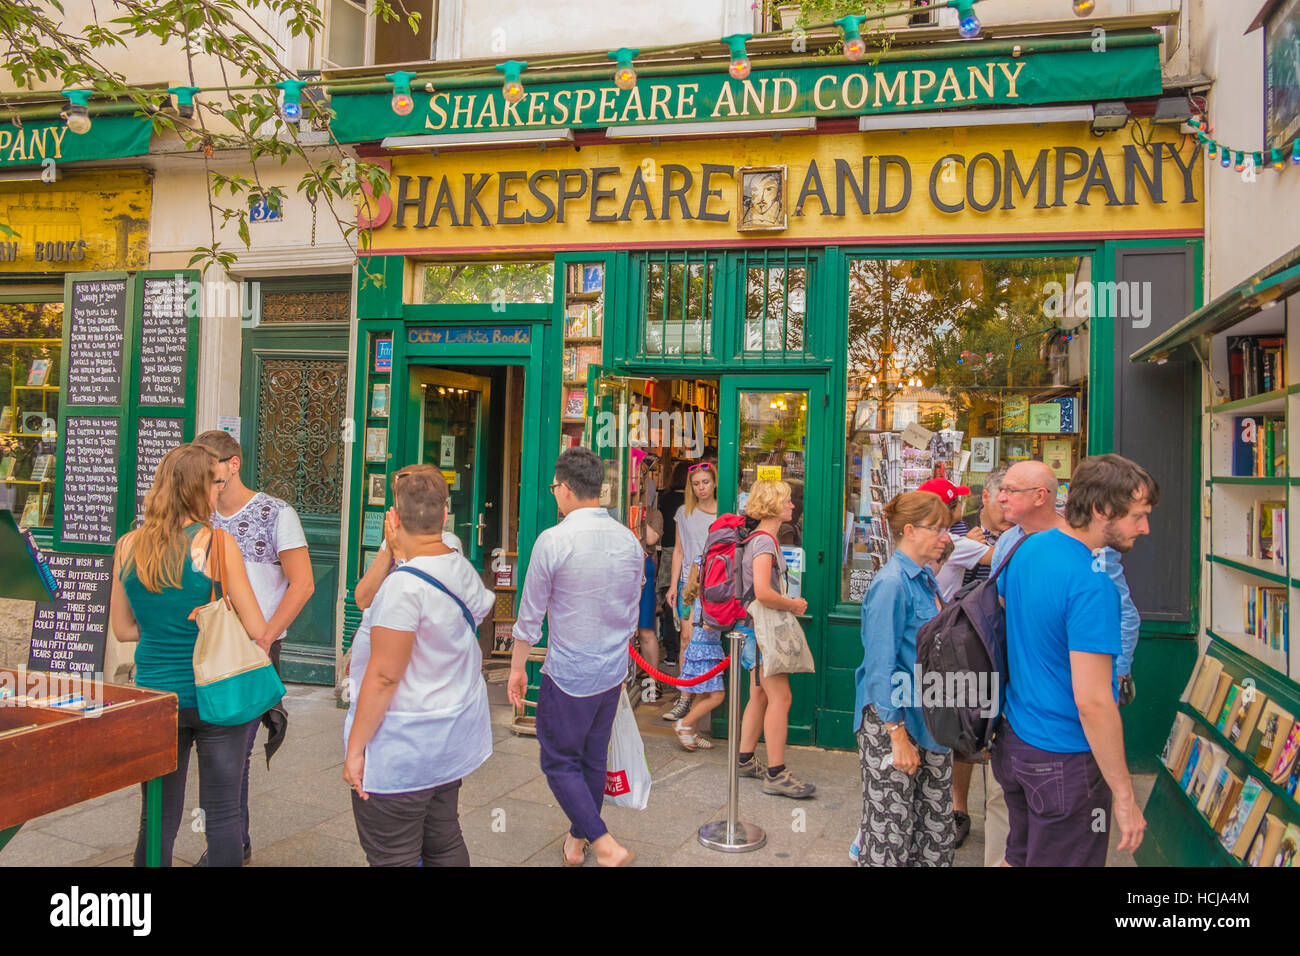 shakespeare and company bookstore, outside view - Stock Image